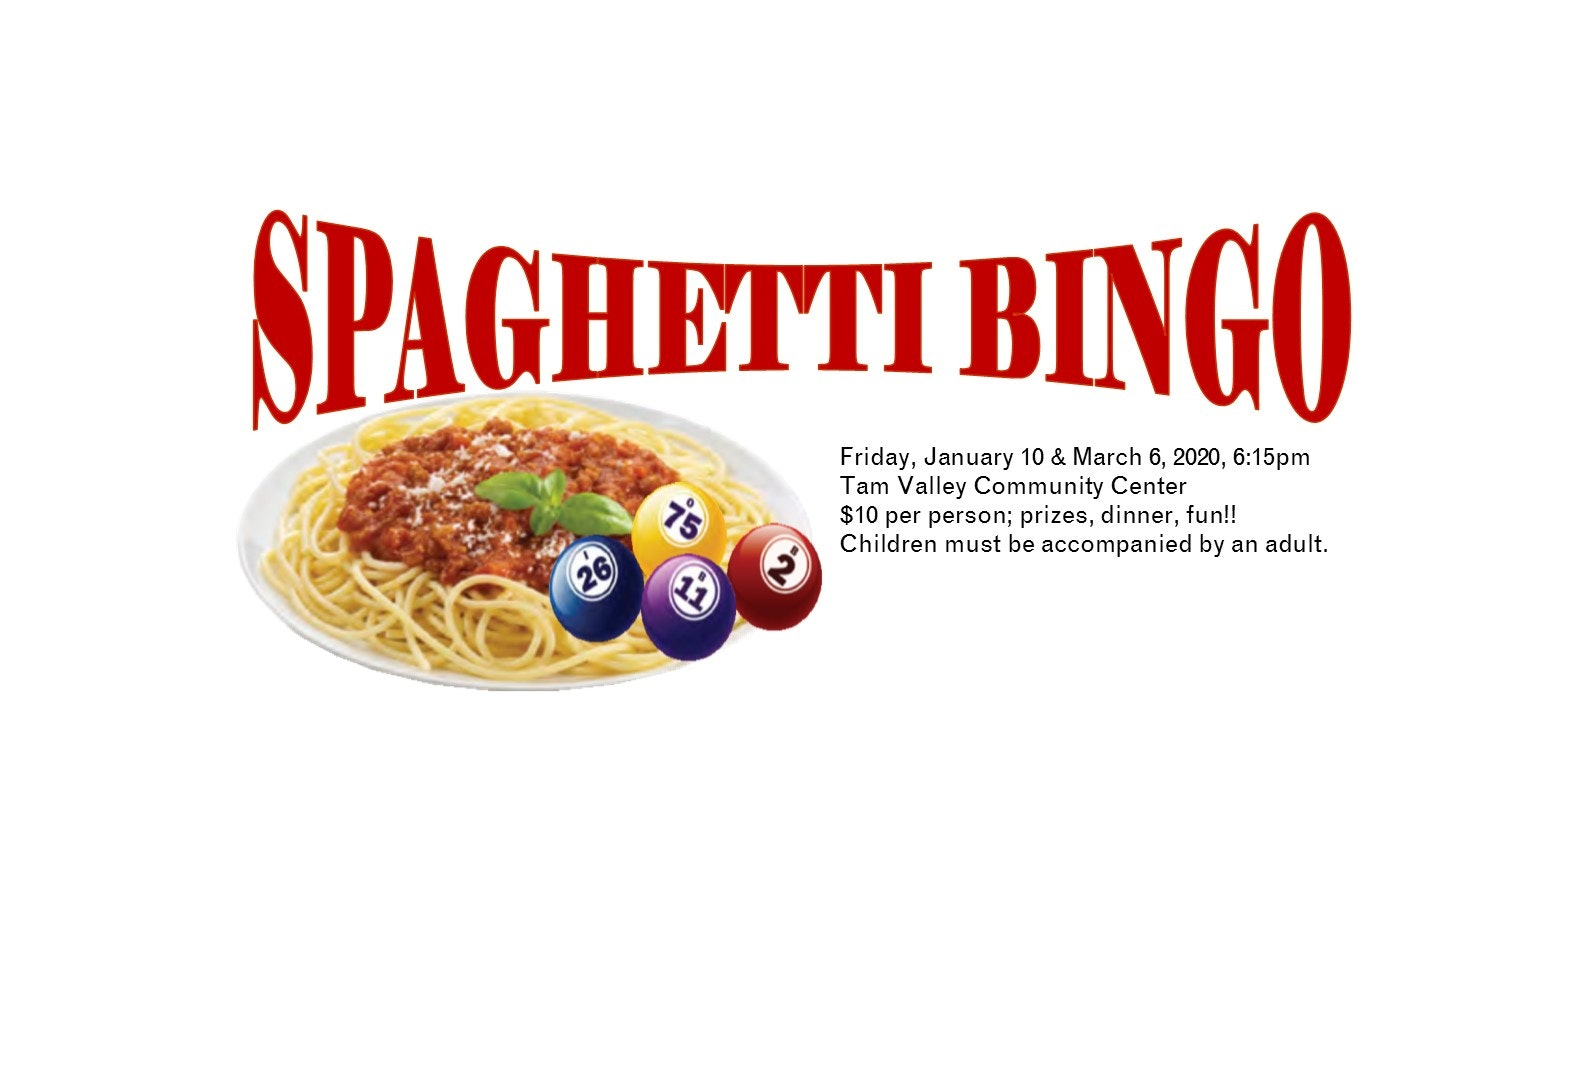 May contain: pasta, spaghetti, food, and advertisement